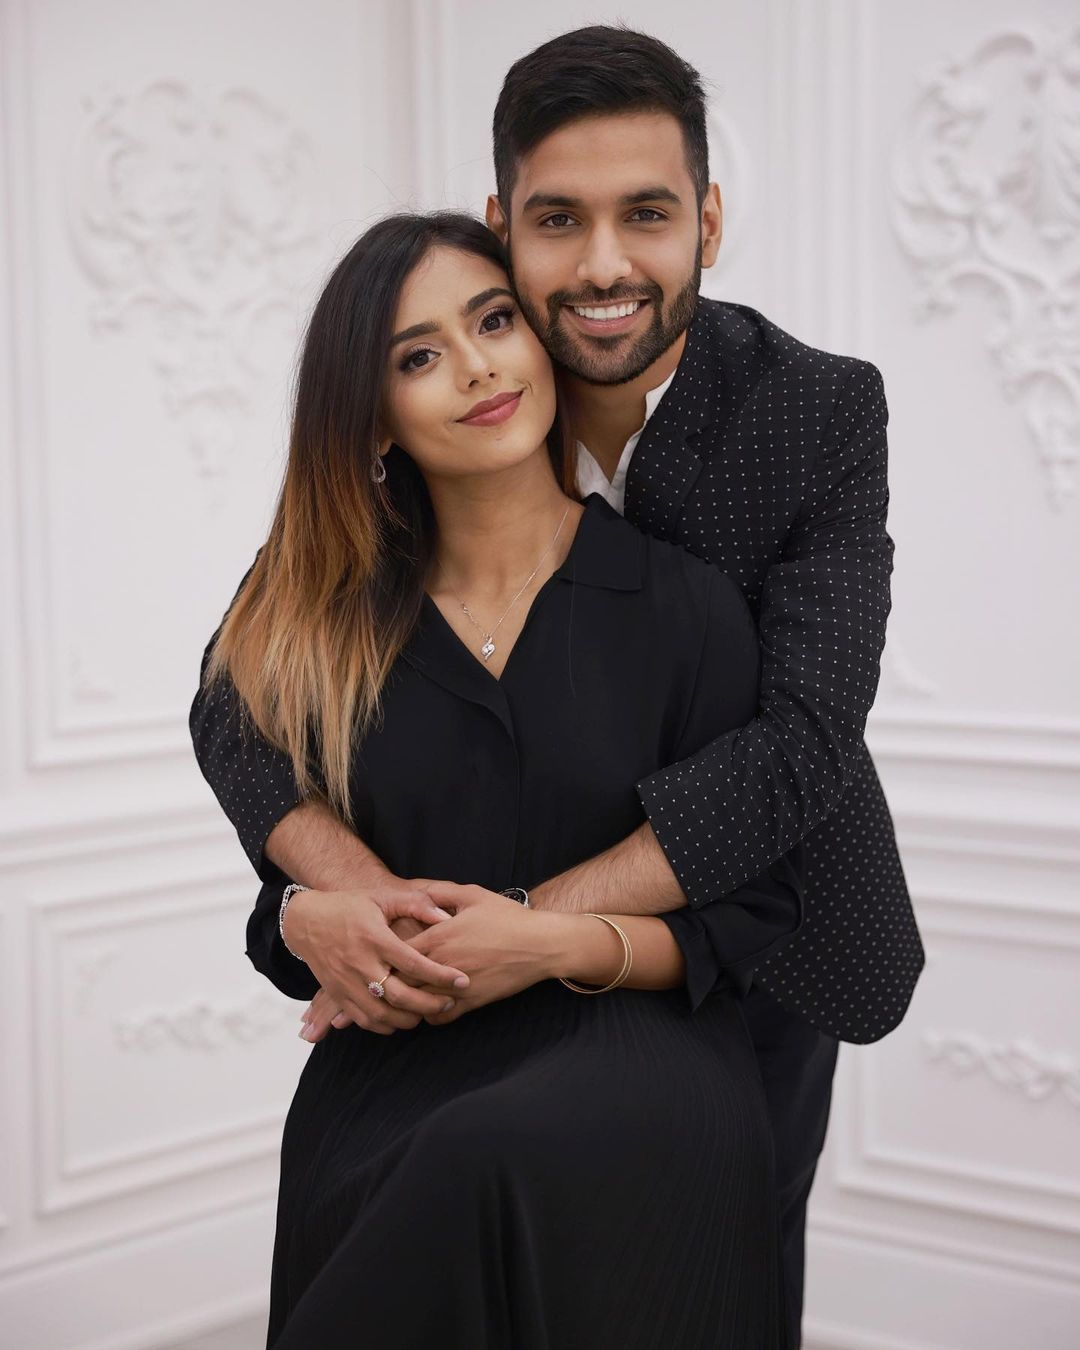 Youtuber Zaid Ali with his Wife - 13 Adorable Pictures